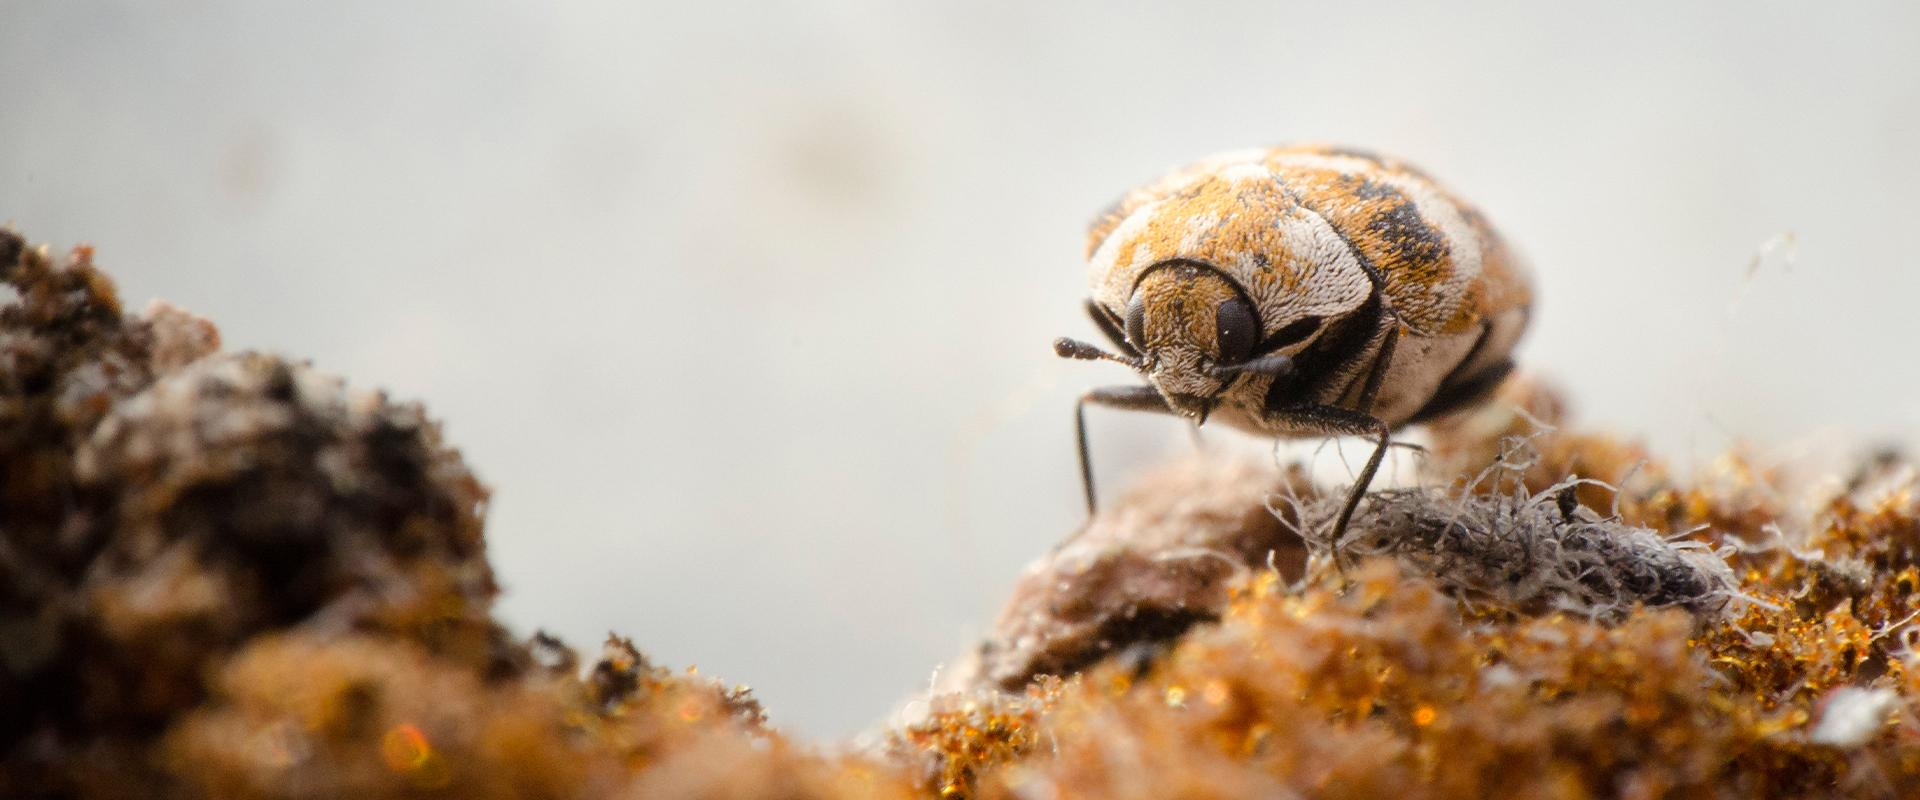 a carpet beetle on dirt